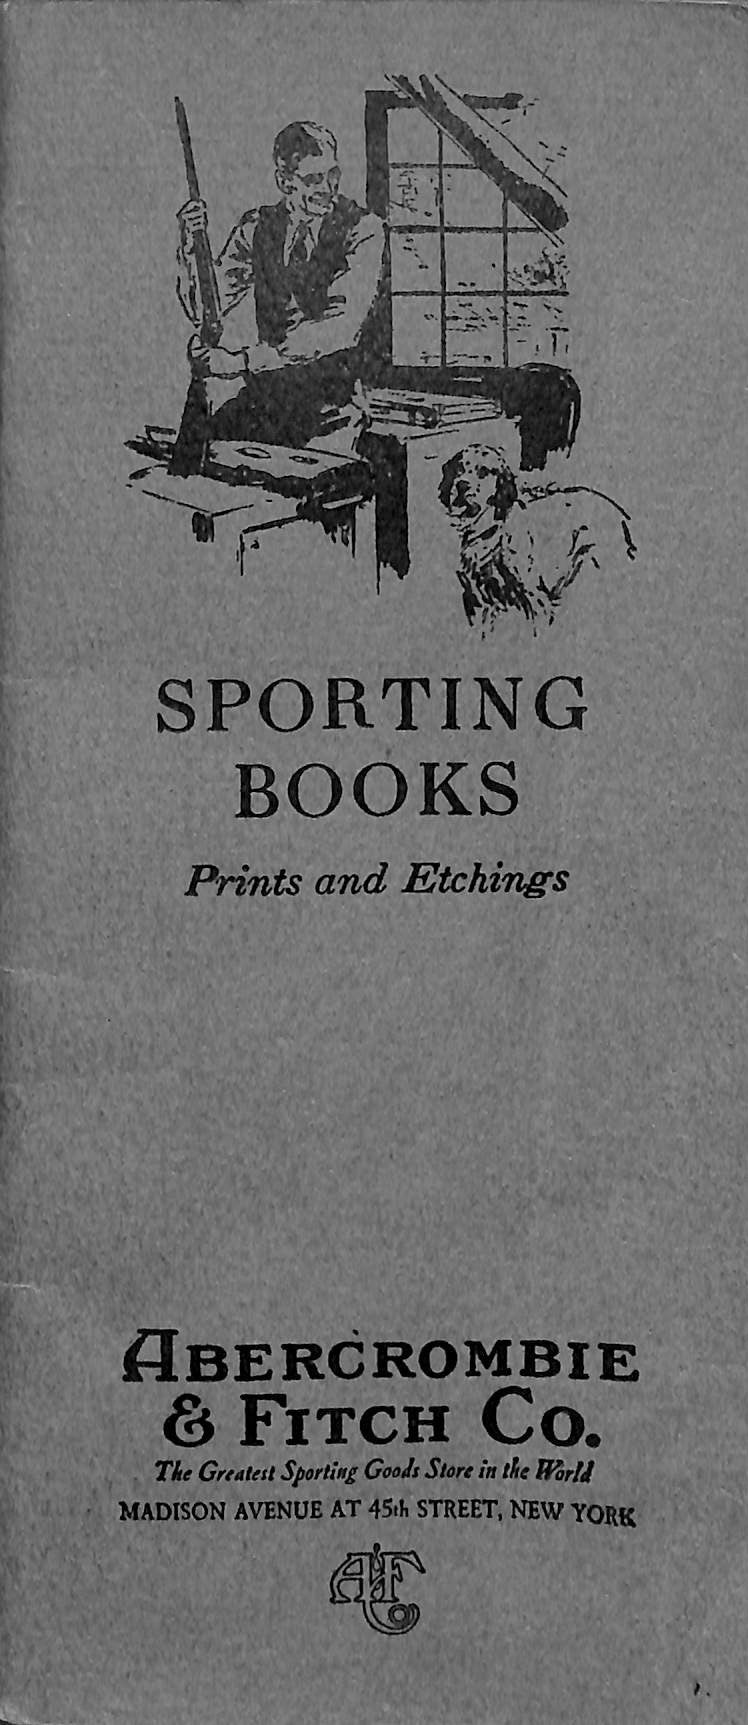 Sporting Books: Prints and Etchings - Abercrombie & Fitch Co.